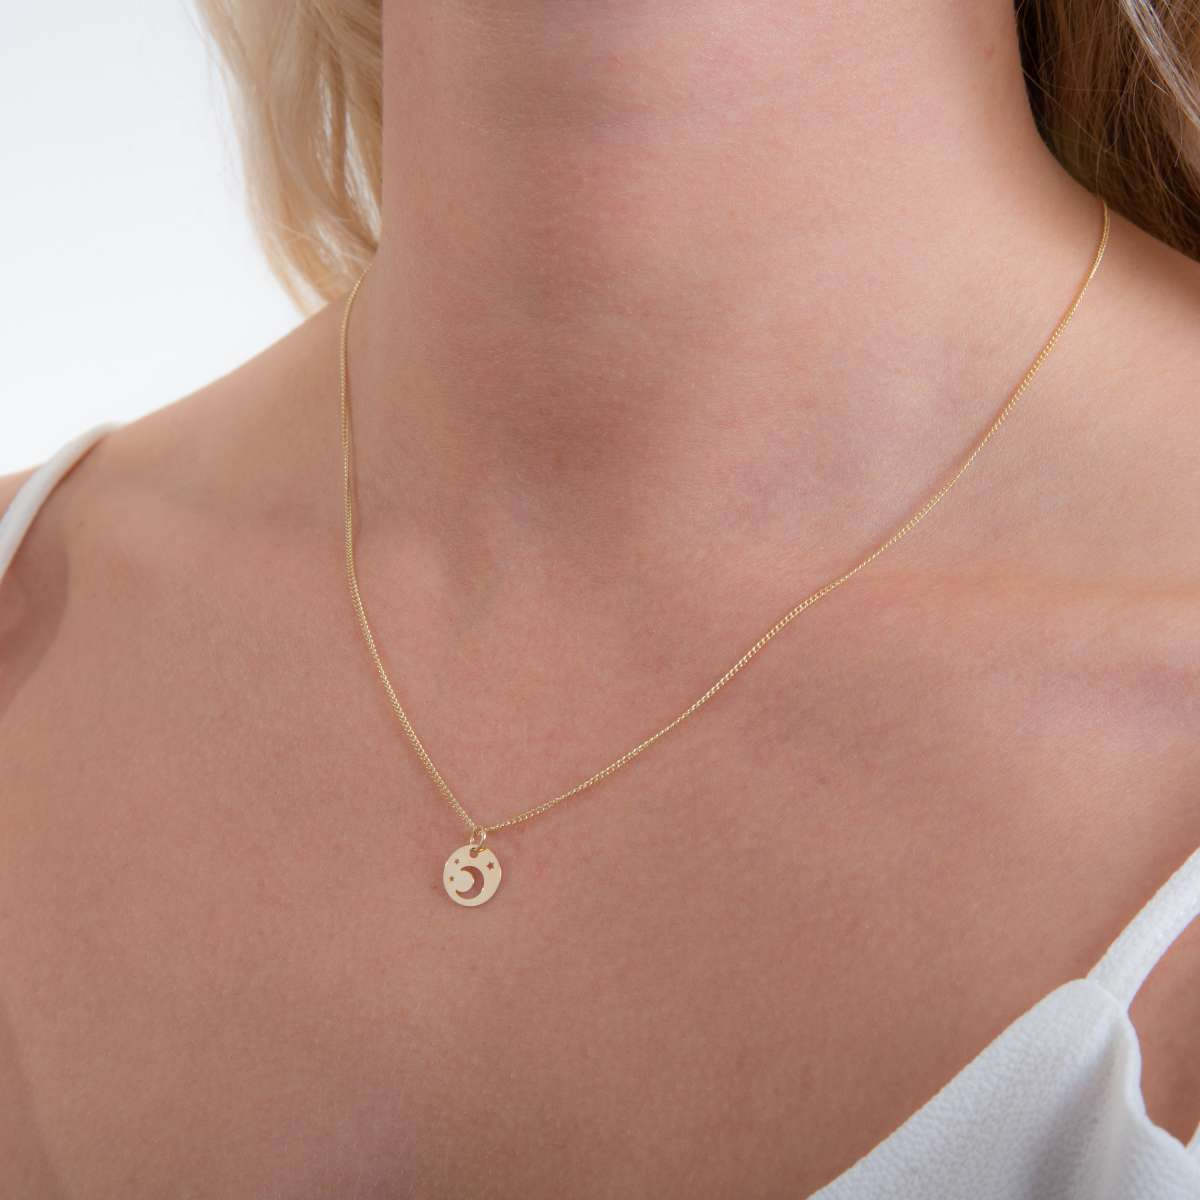 Alterative image for 9ct Gold Moon & Star Flat Necklace - 16 - 18 Inches